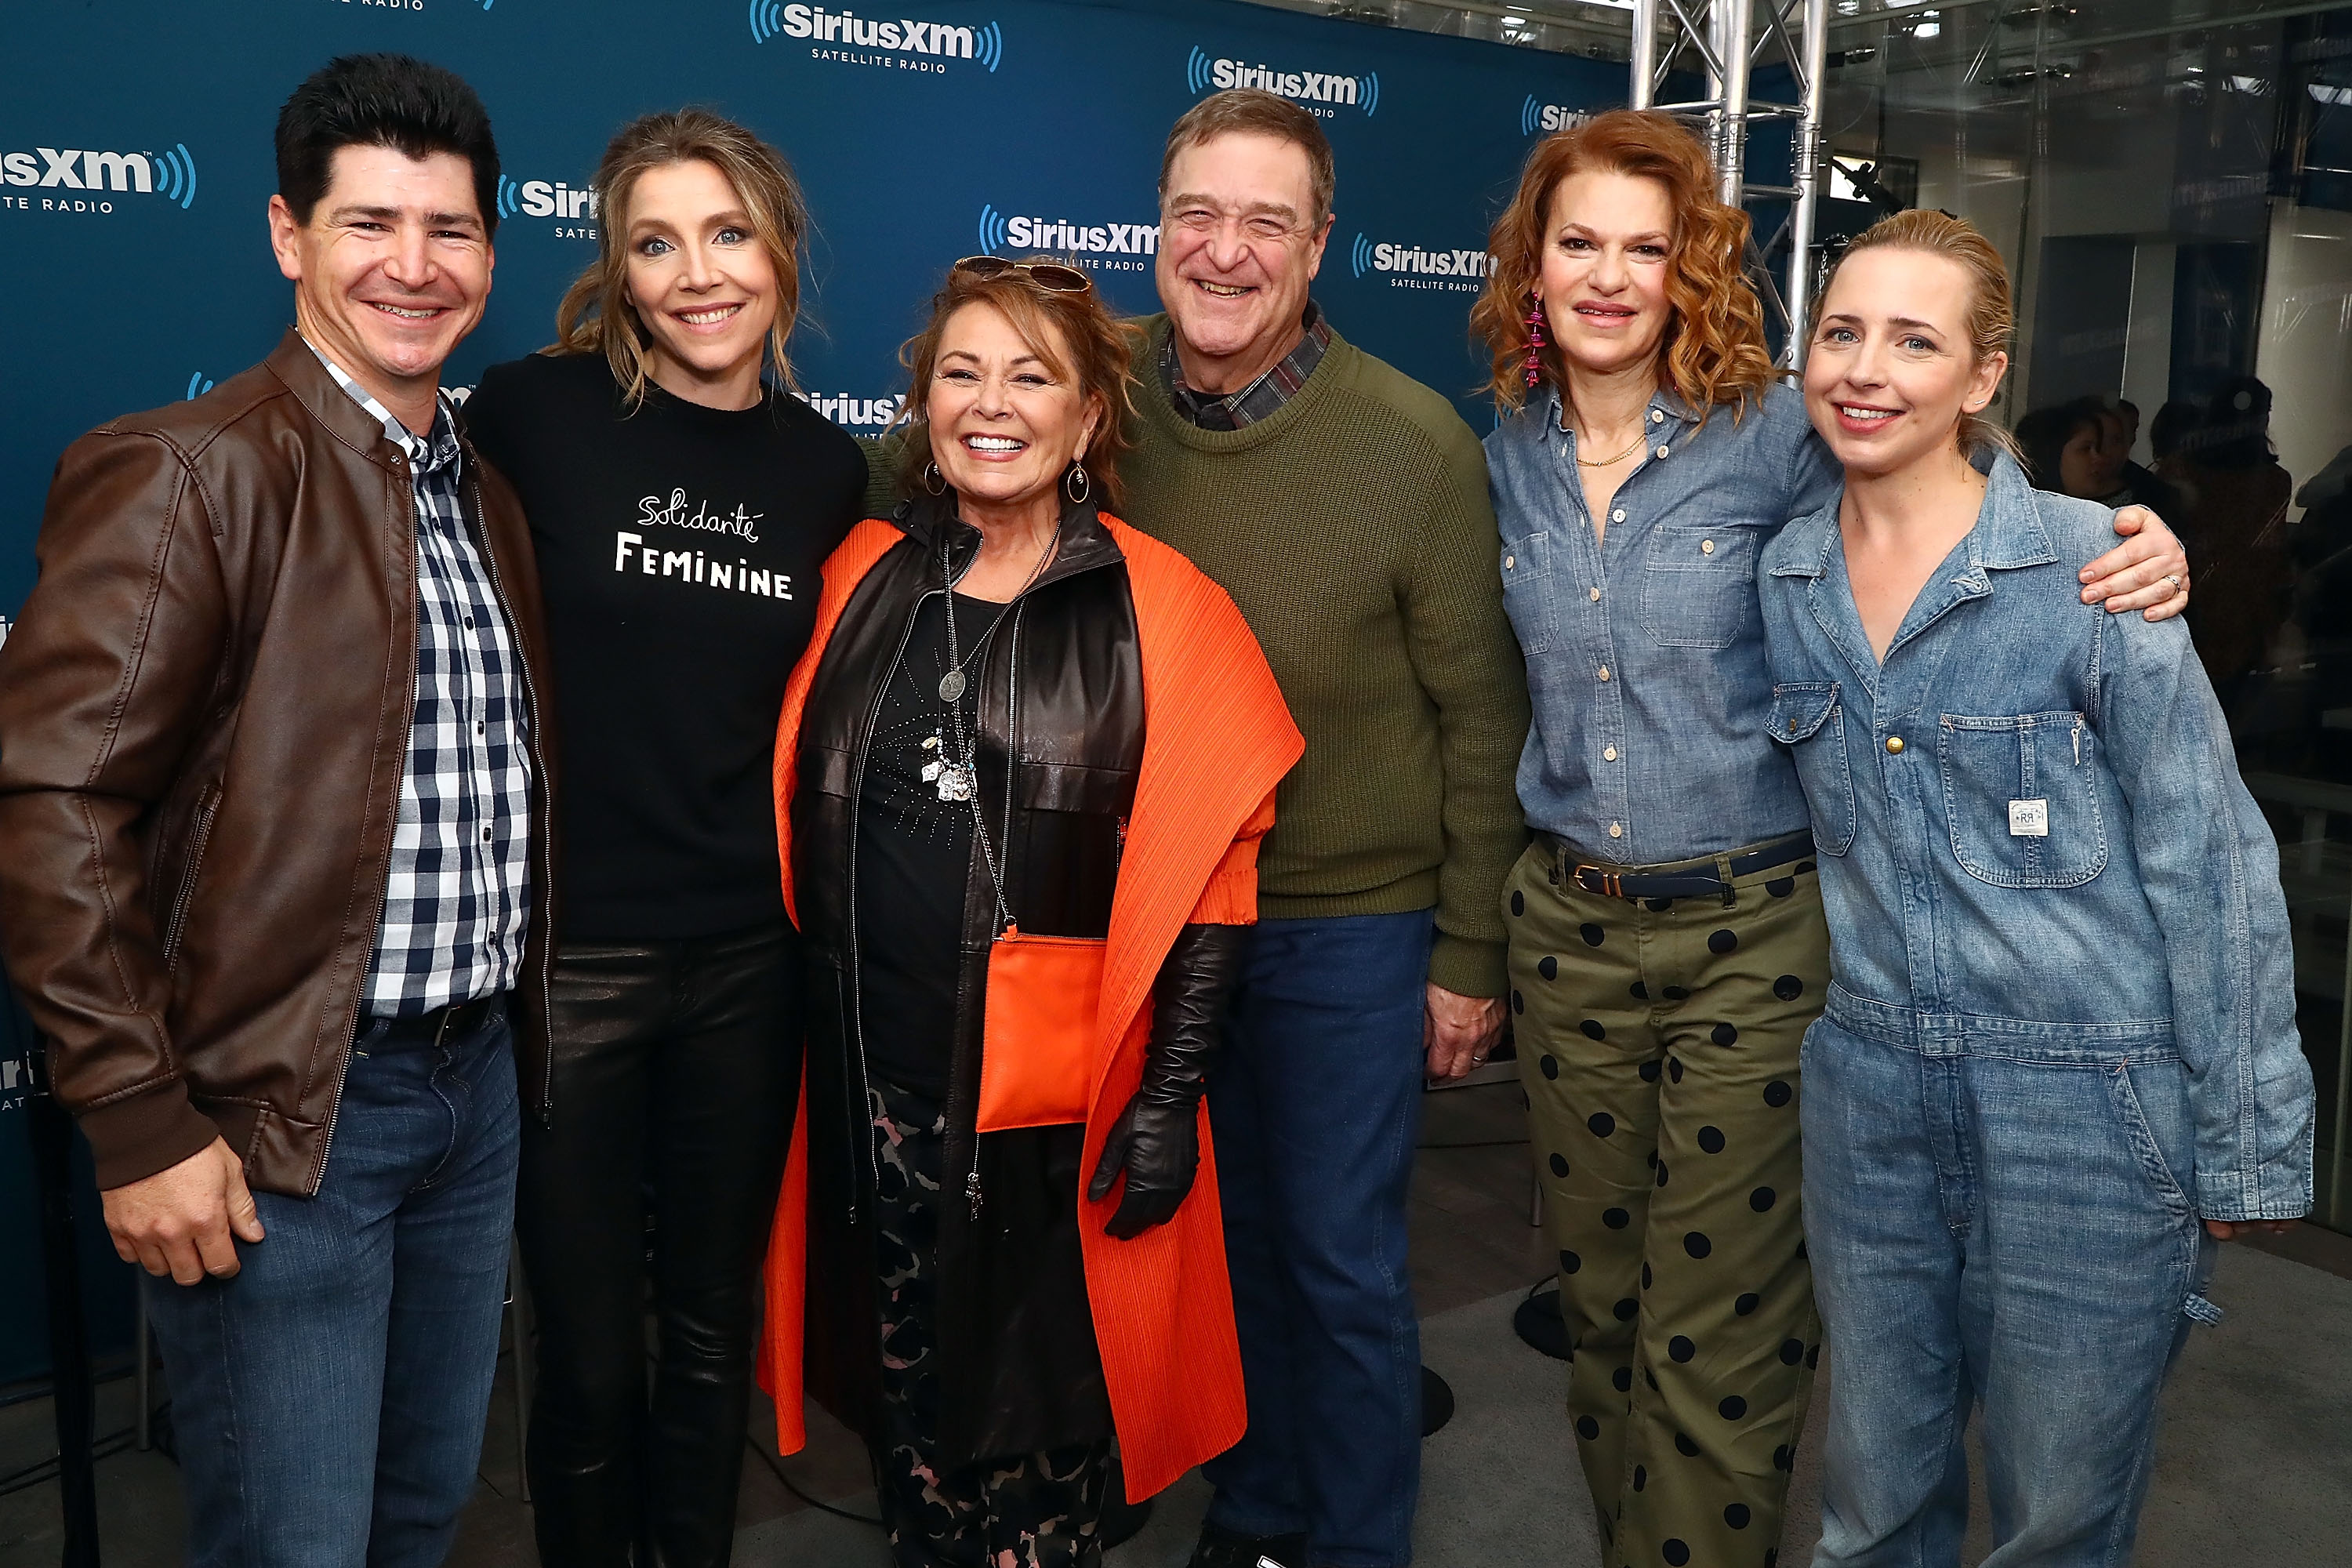 (L-R) Actors Michael Fishman, Sarah Chalke, Roseanne Barr, John Goodman, SiriusXM host Sandra Bernhard and Lecy Goranson pose for photos during SiriusXM's Town Hall with the cast of Roseanne on March 27, 2018 in New York City.